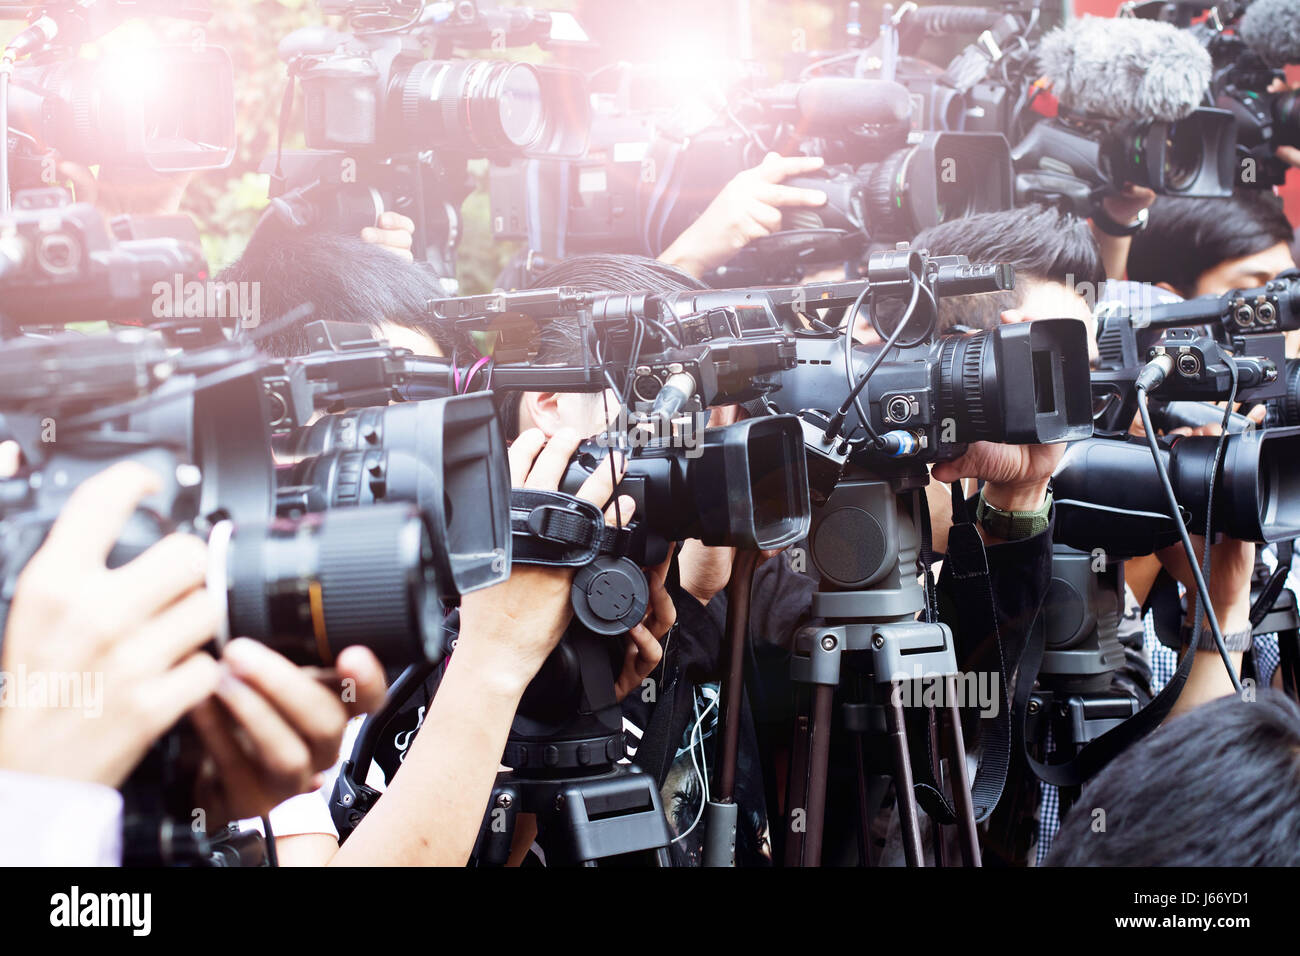 press and media camera ,video photographer on duty in public news event for reporter - Stock Image